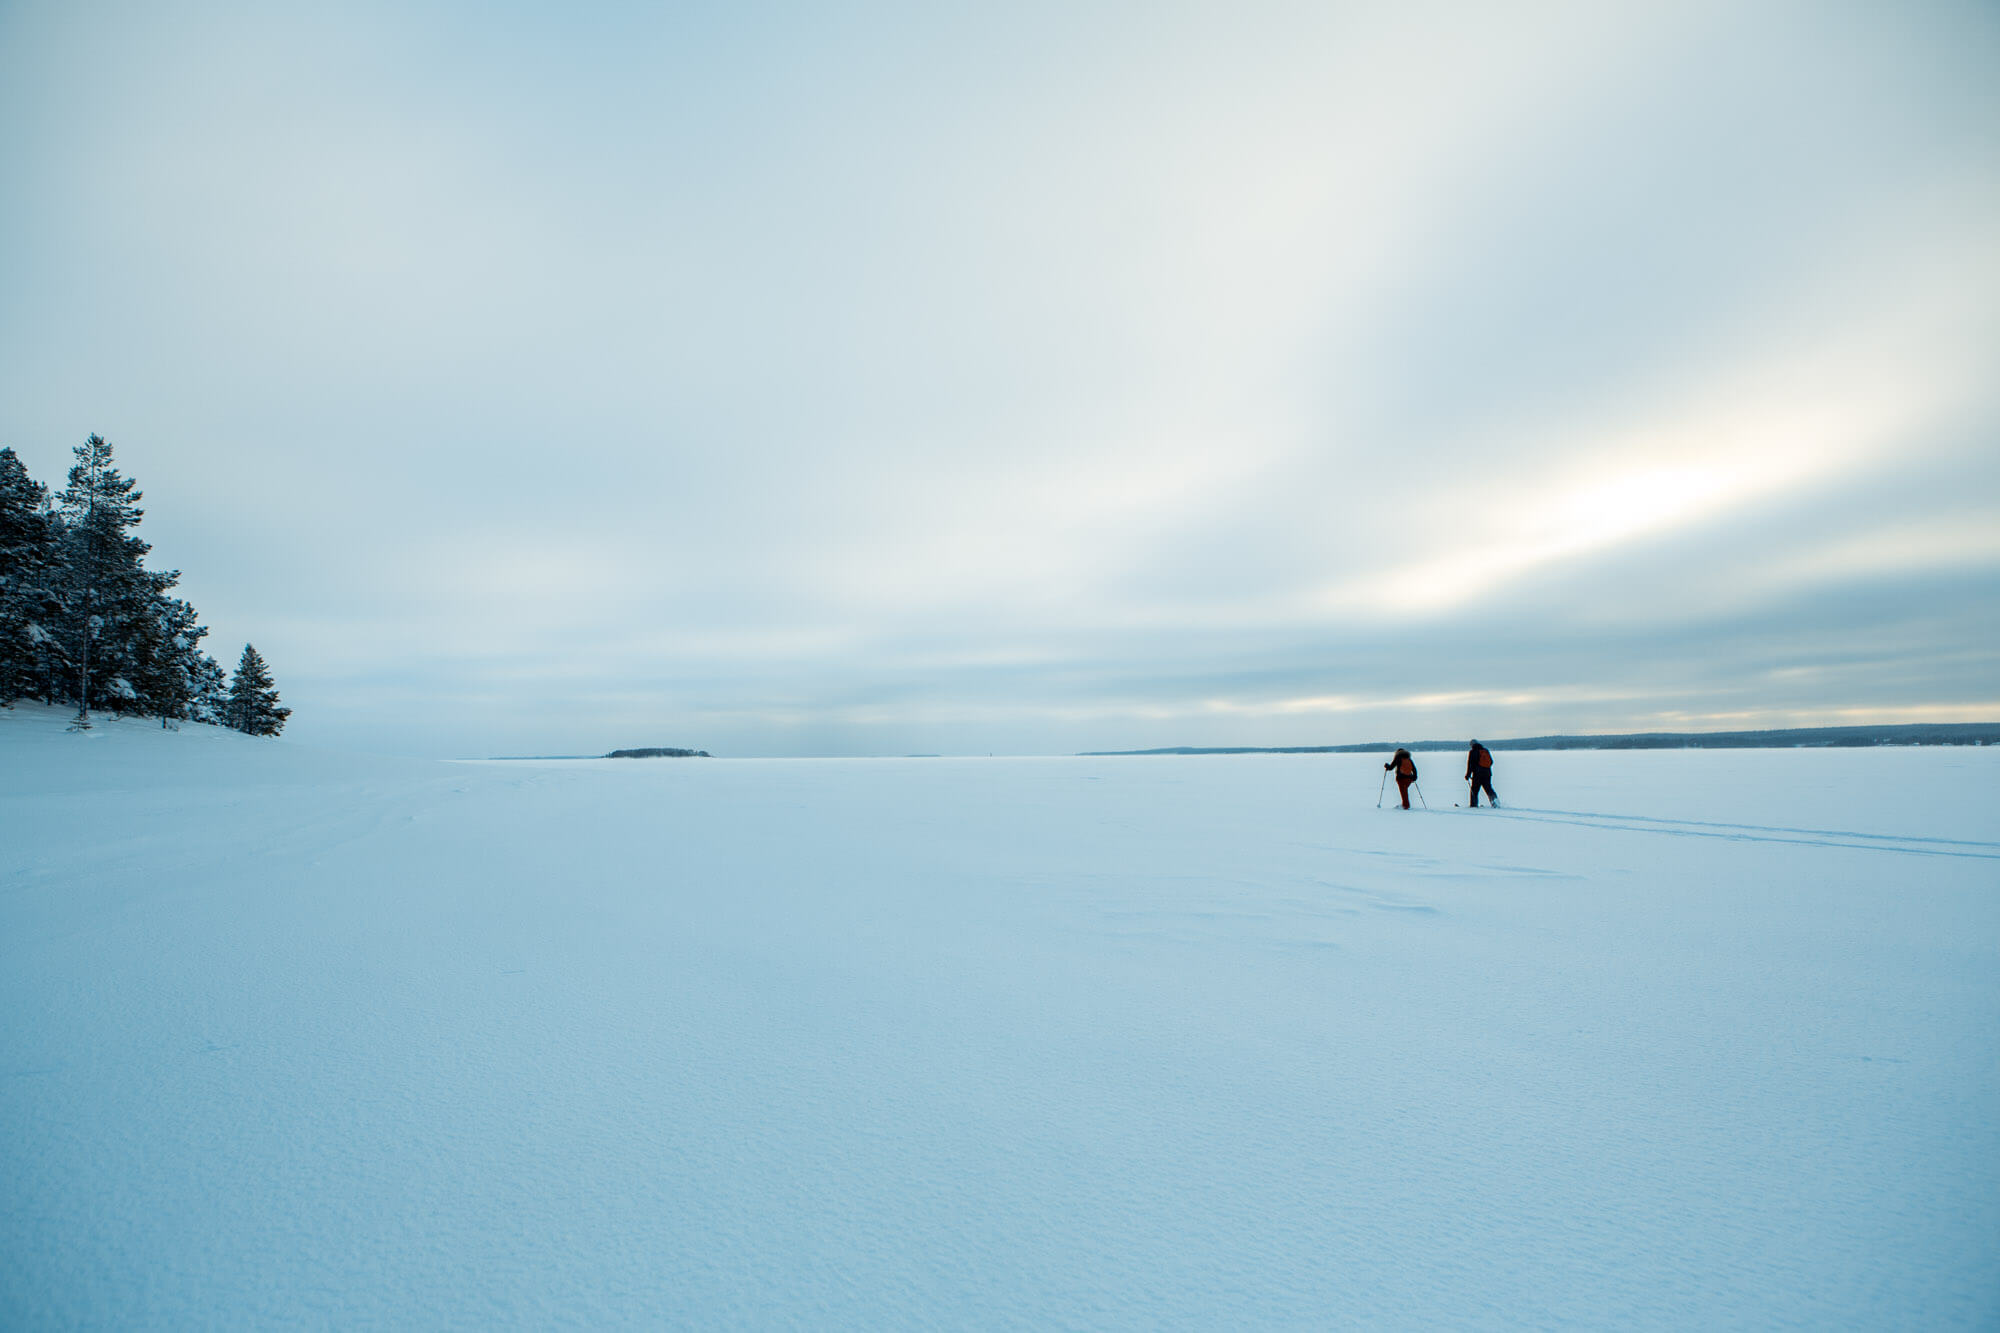 Skiing on the ice in Swedish Lapland